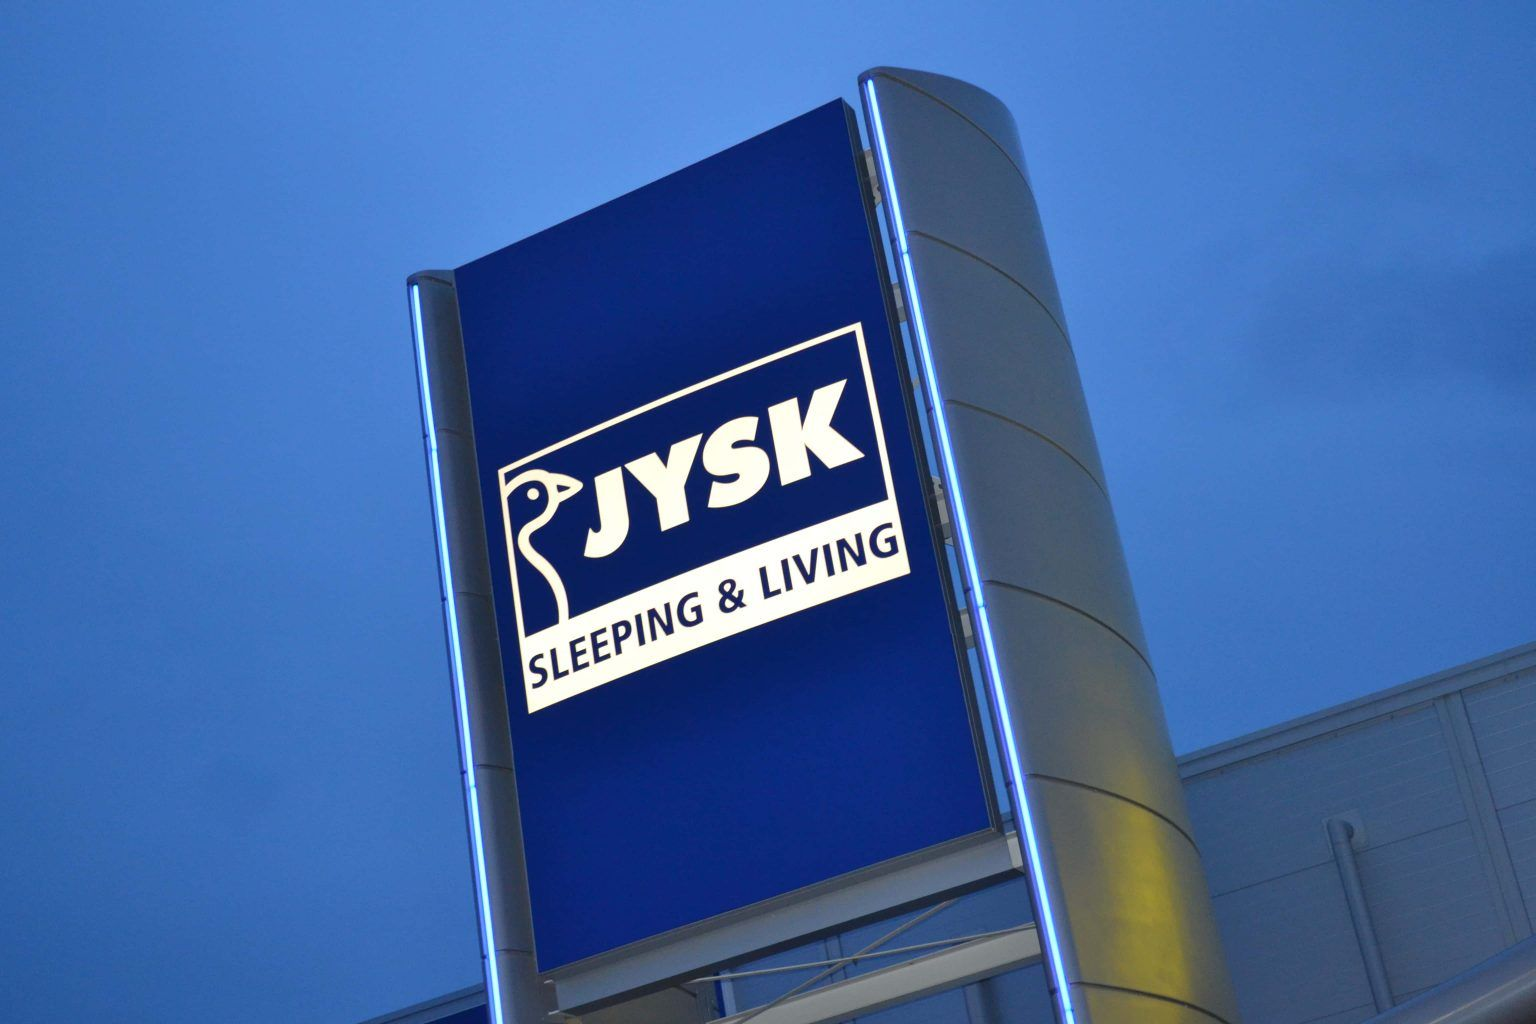 jysk flexface illuminated signage